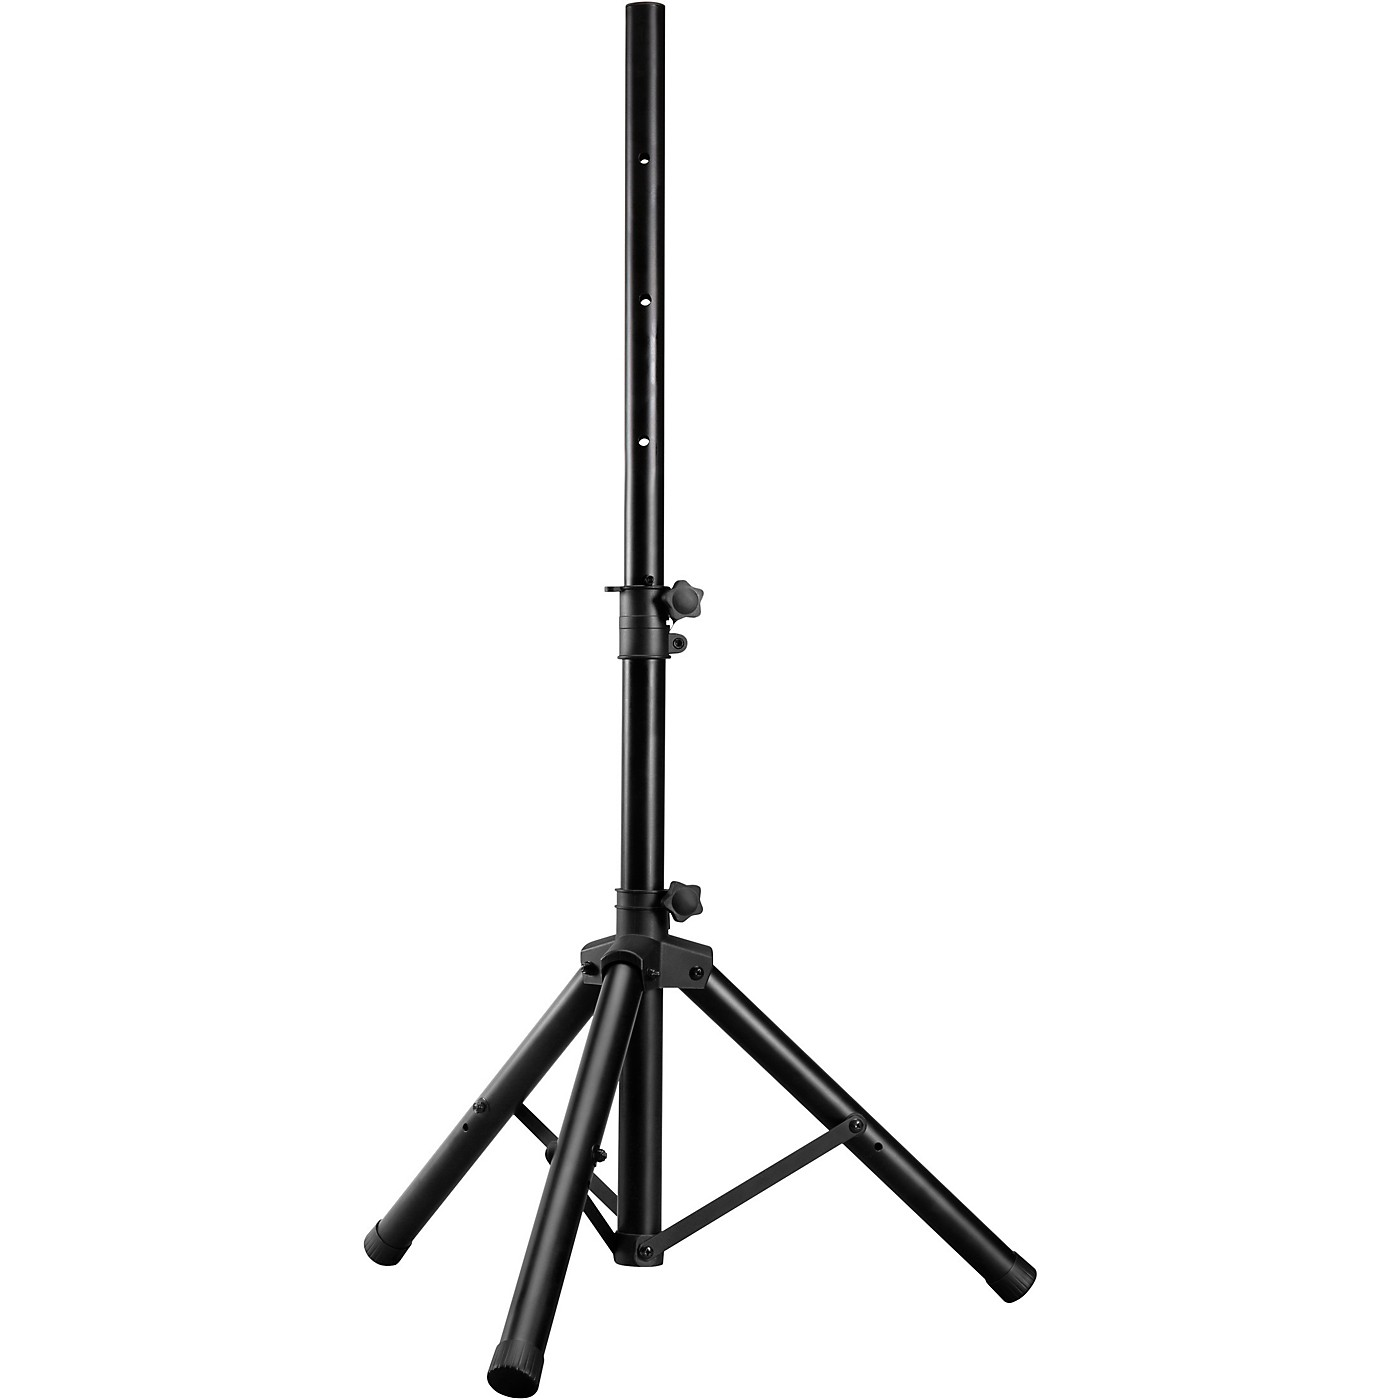 Proline Lightweight Adjustable Speaker Stand with Carrying Bag thumbnail